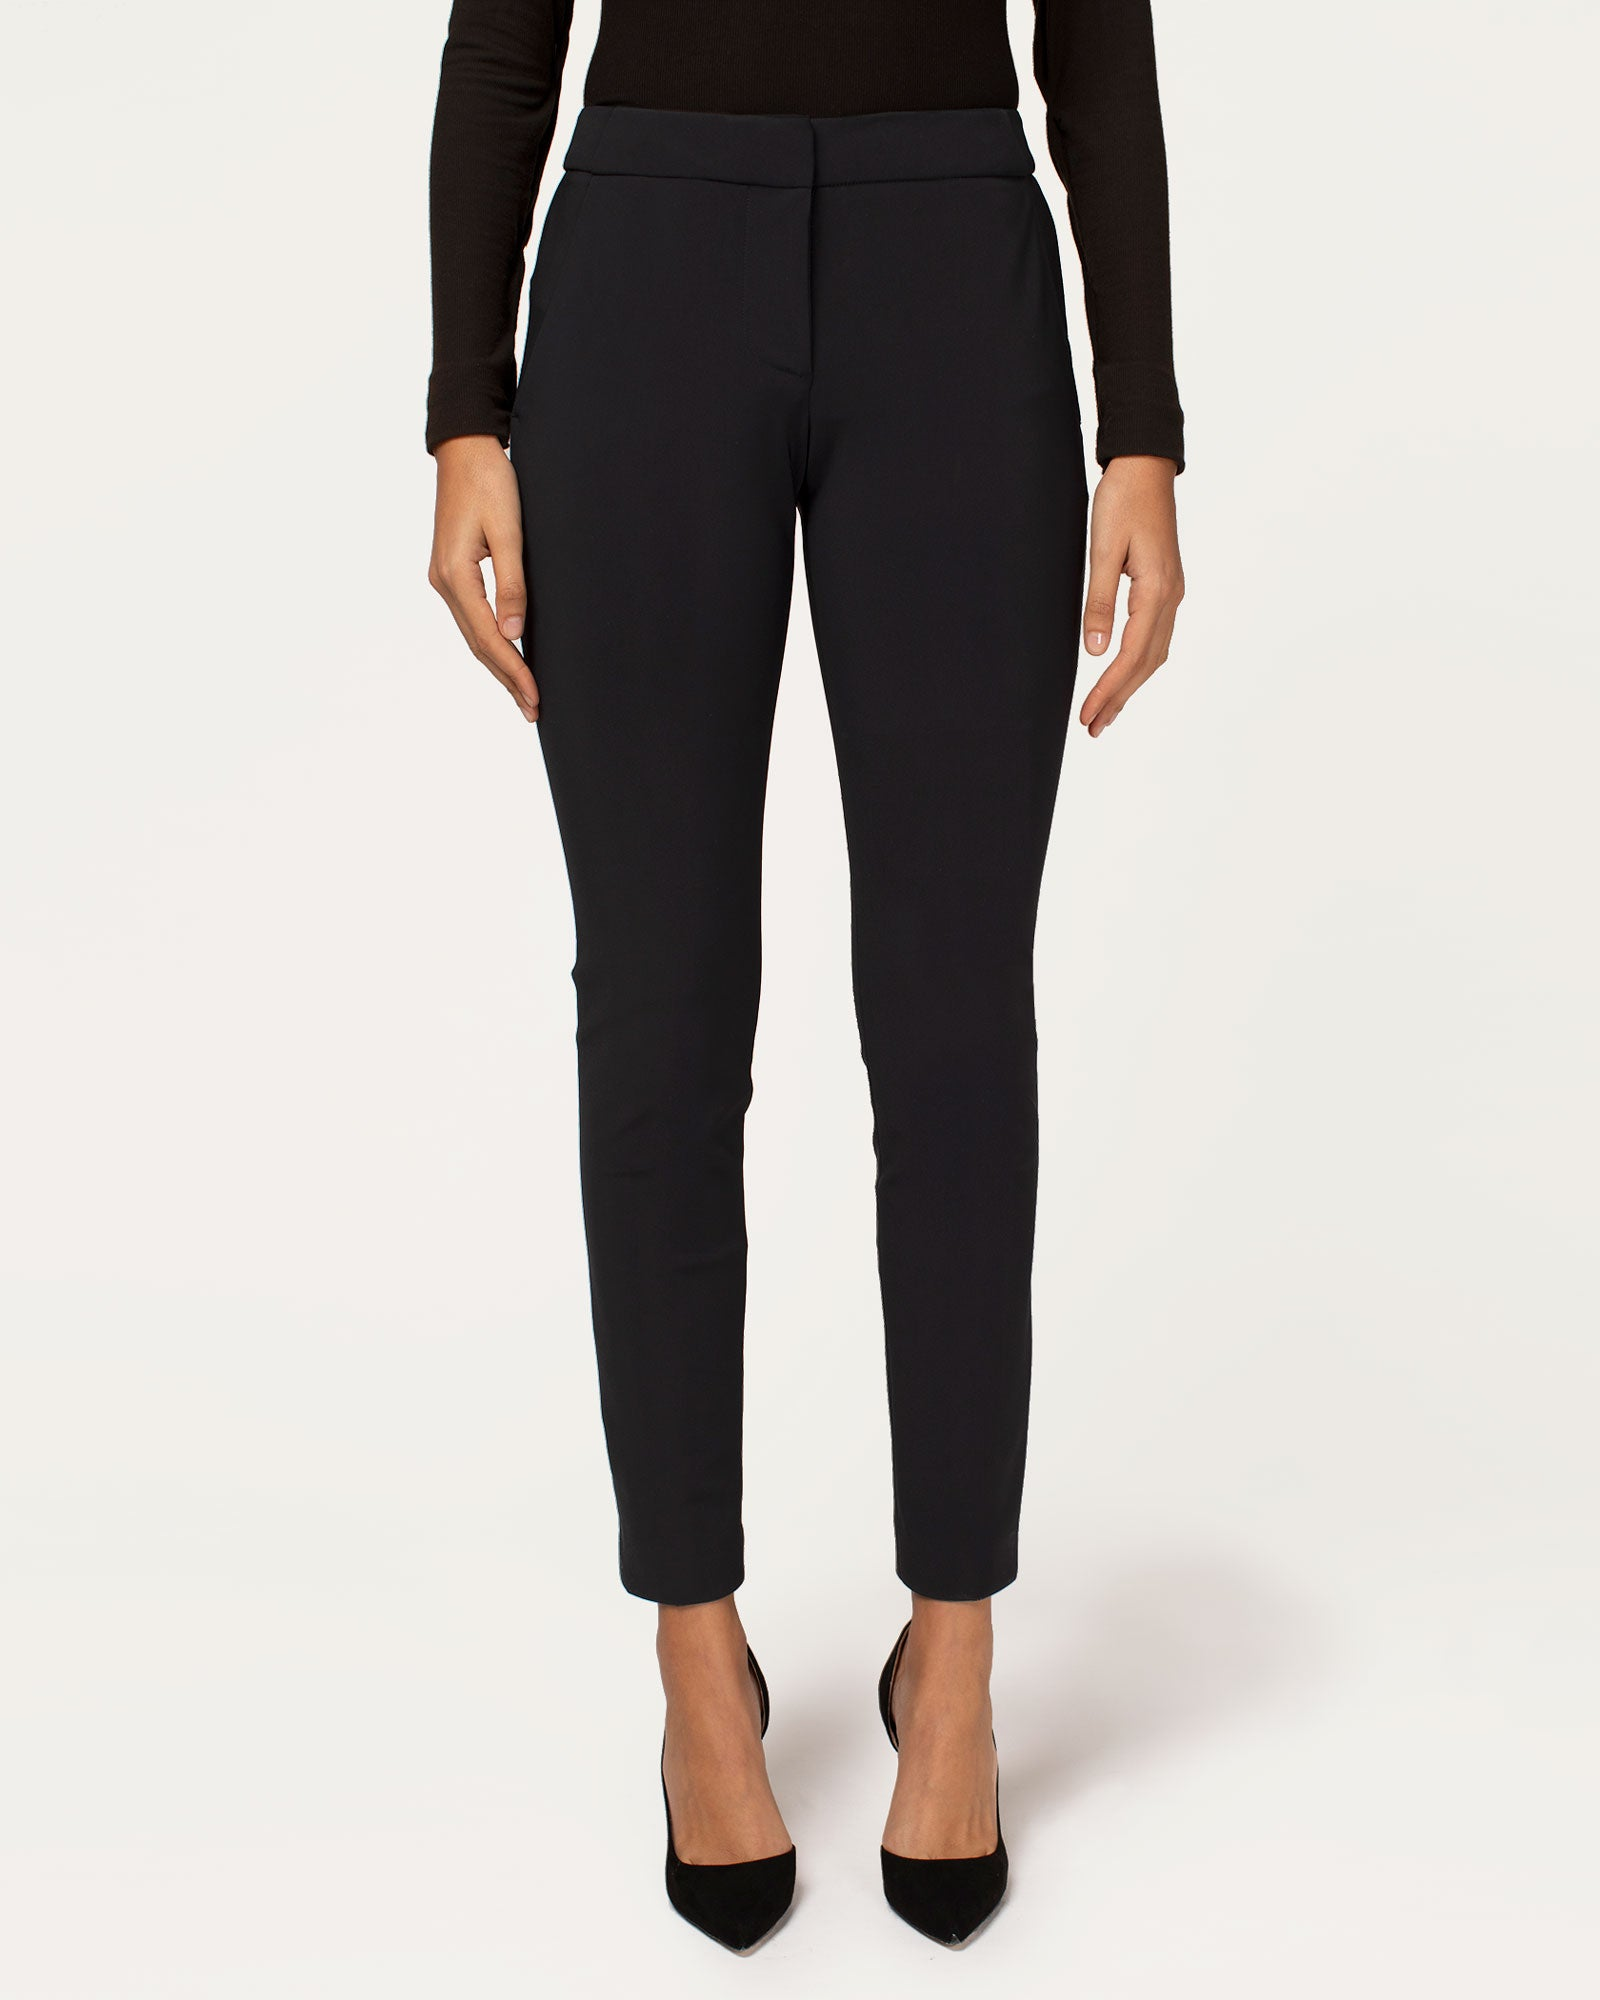 Power Move Trousers Black 2.0